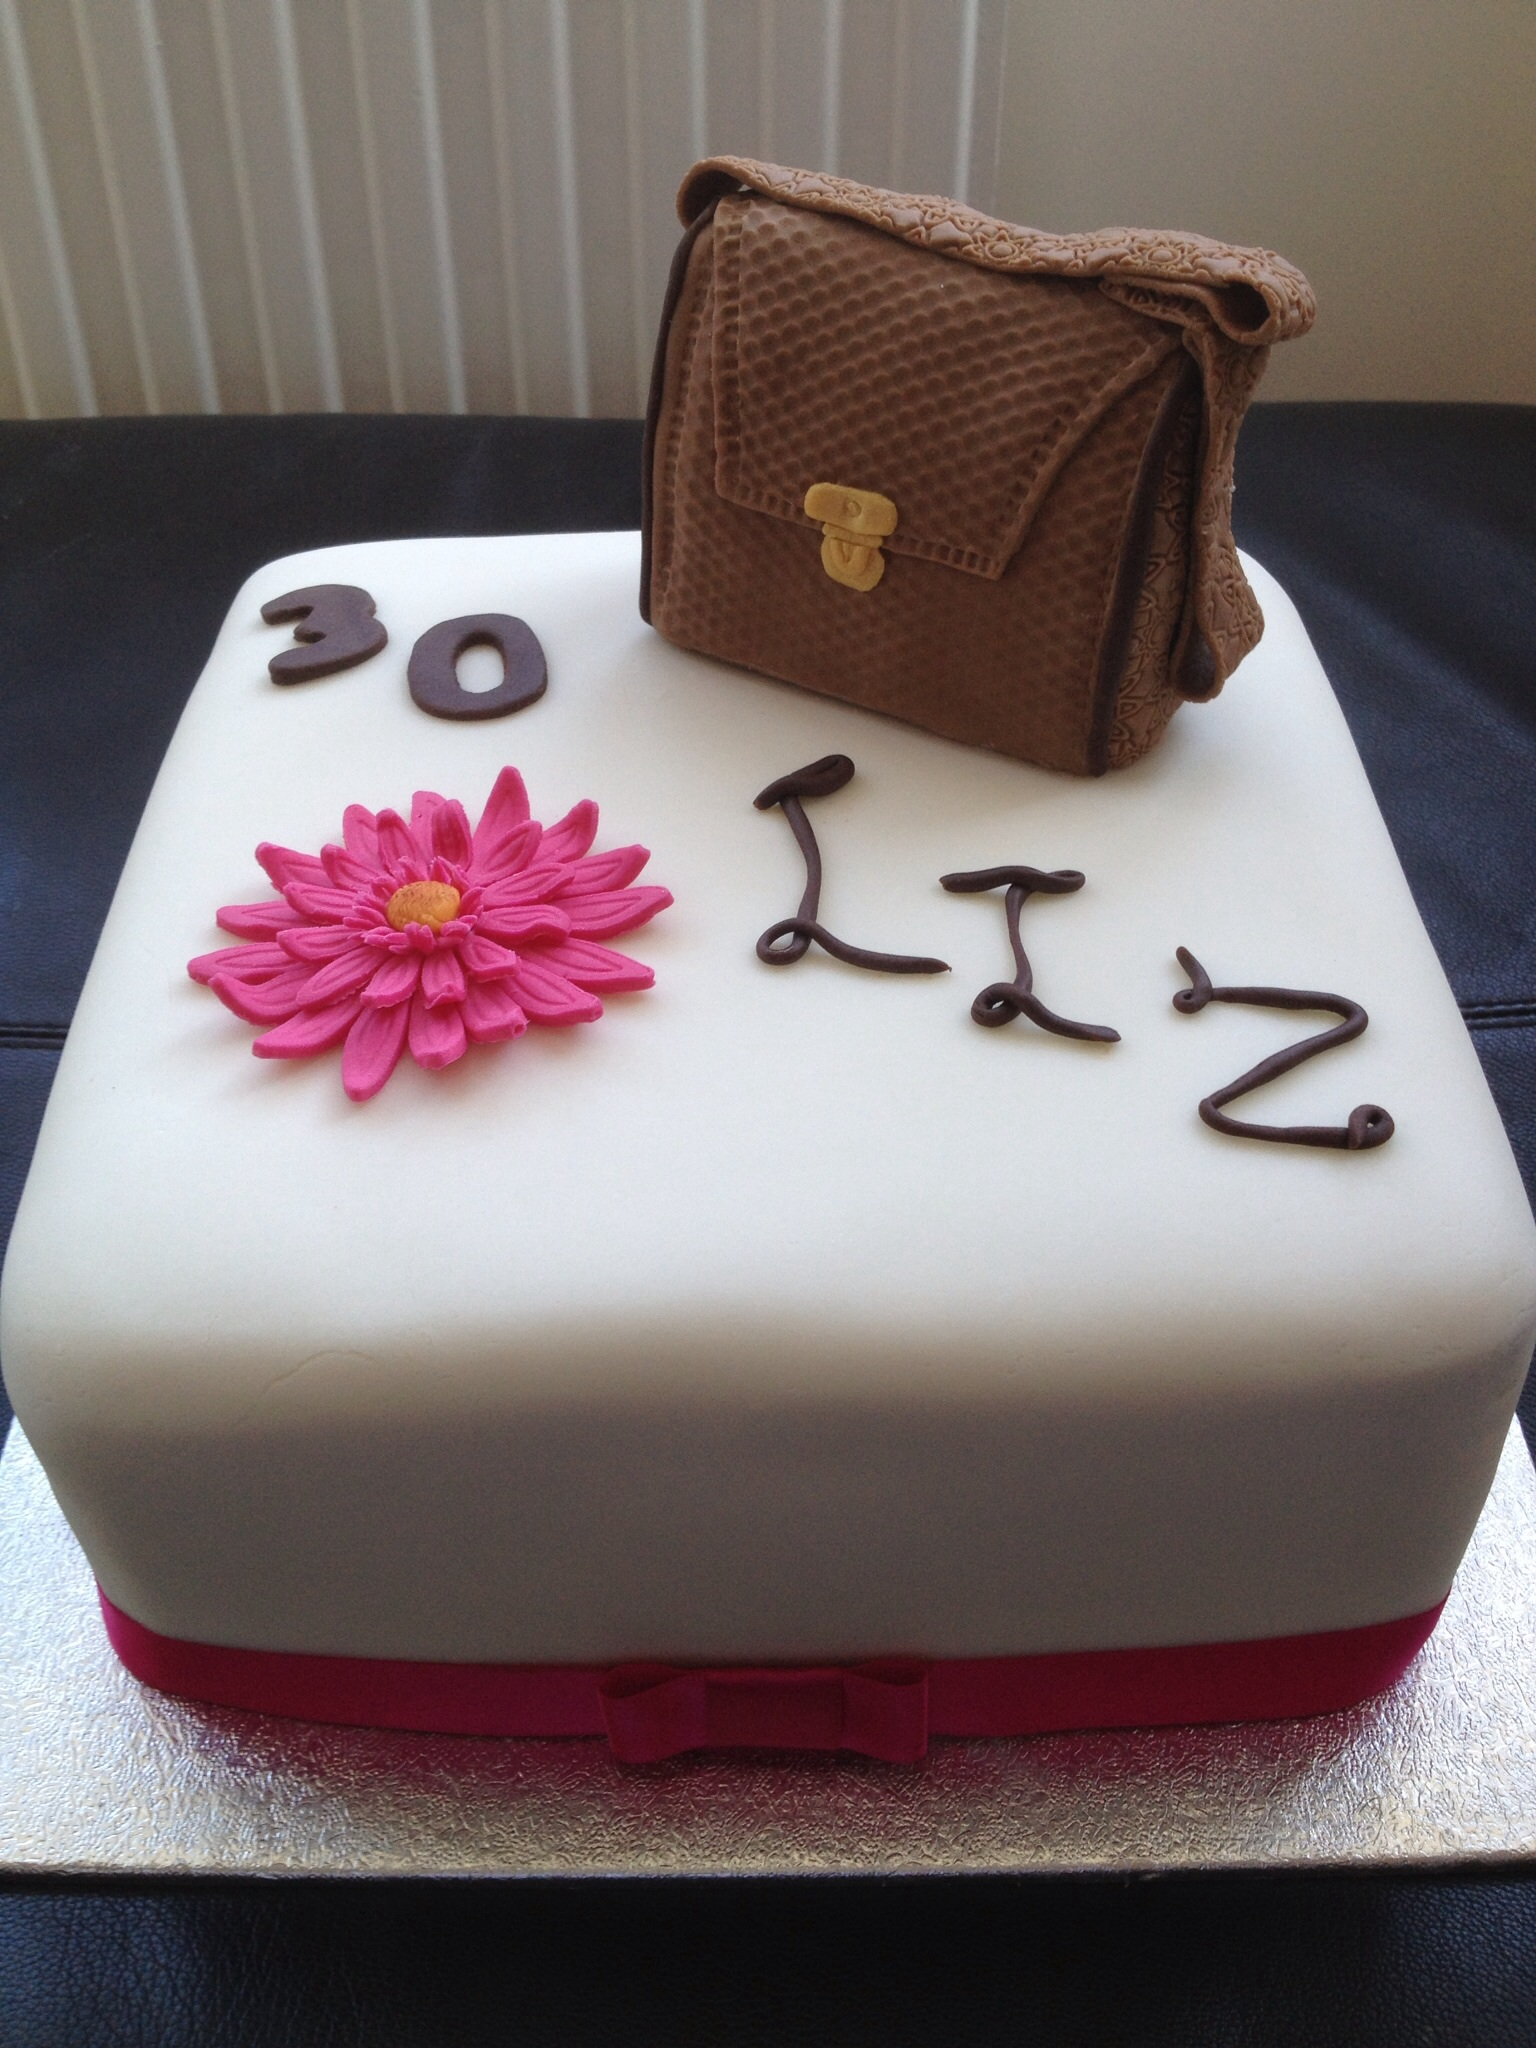 Cakemad Creating Imaginative Cakes For Any Occasion